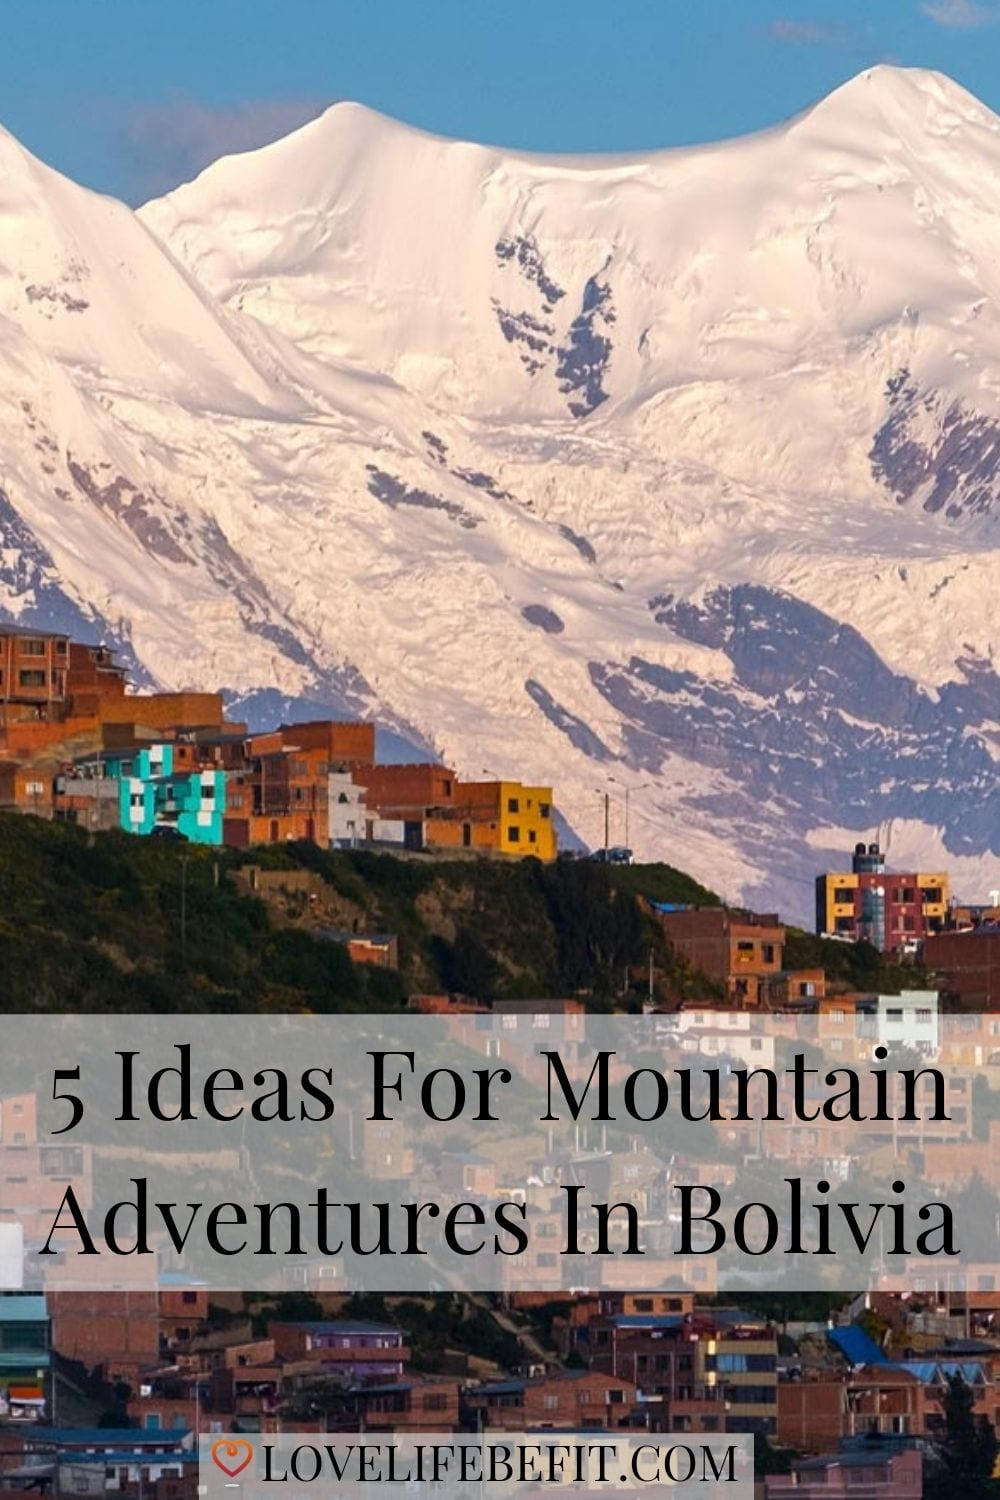 If you\'re a mountain lover, Bolivia is about more than salt flats, flamingos and llamas. With the mighty Illimani dominating the skyline of La Paz, the mountains beckon. #adventureideas #mountains